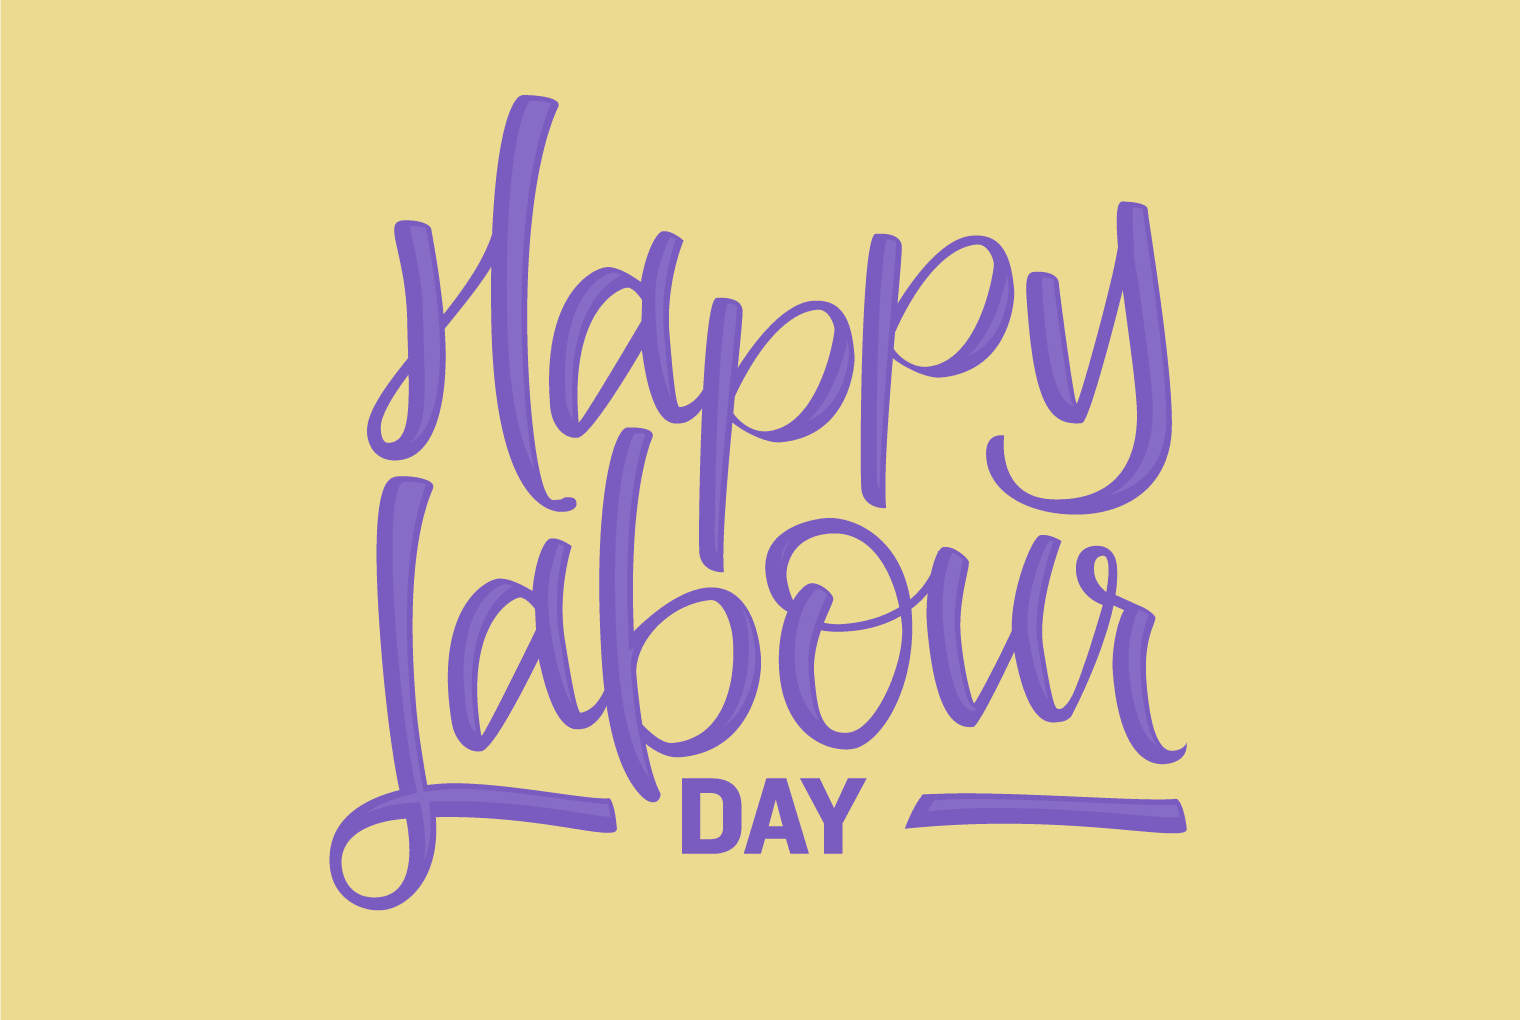 Happy Labour Day Campers!!